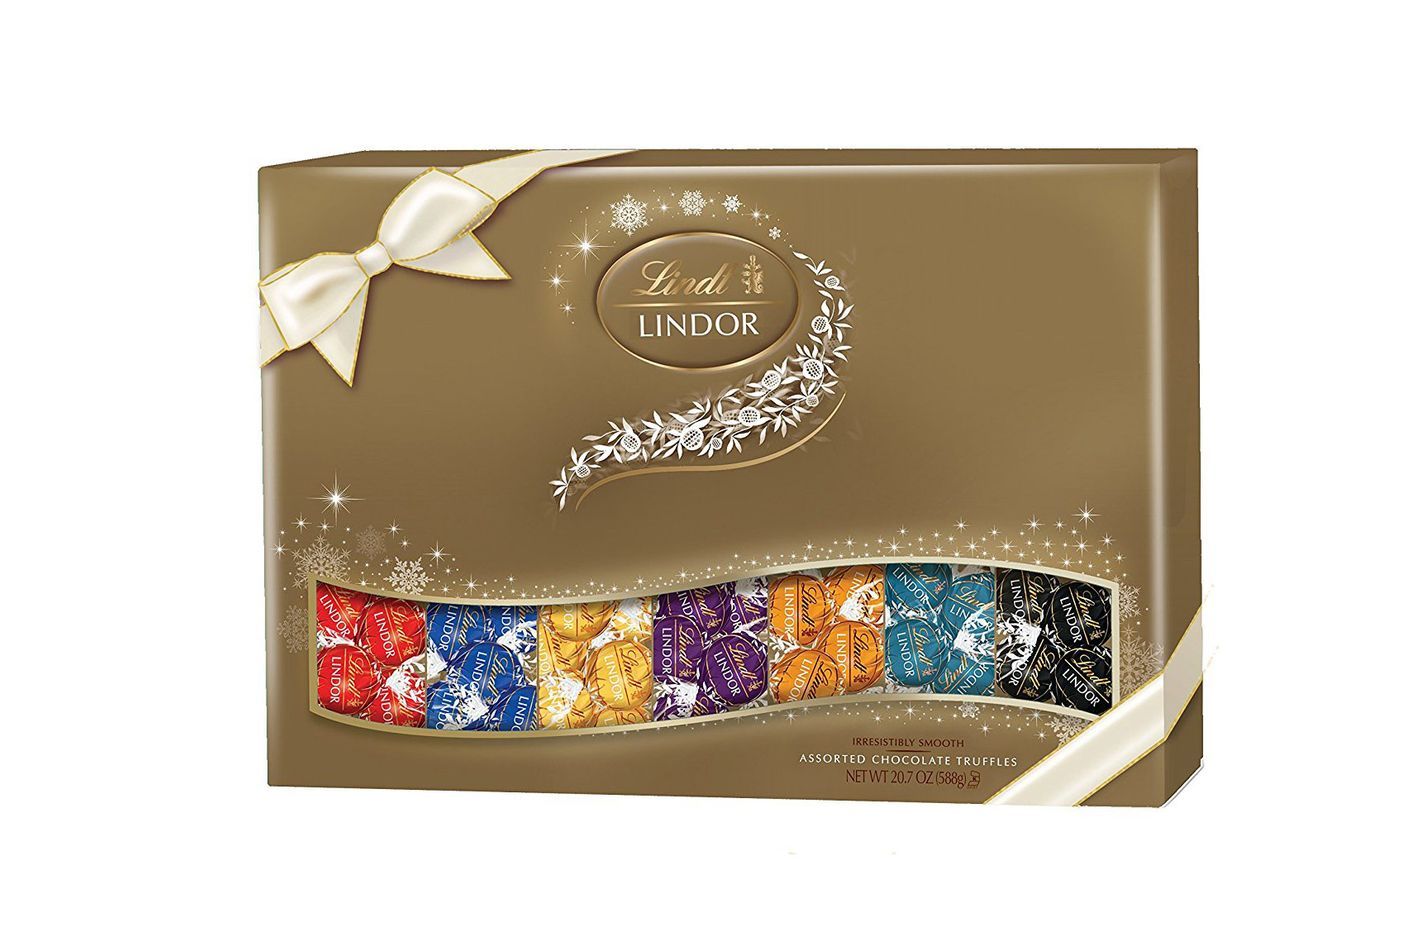 Best gifts for co workers under 30 on amazon lindt lindor holiday deluxe sampler assorted chocolate truffles 207 ounce gift box negle